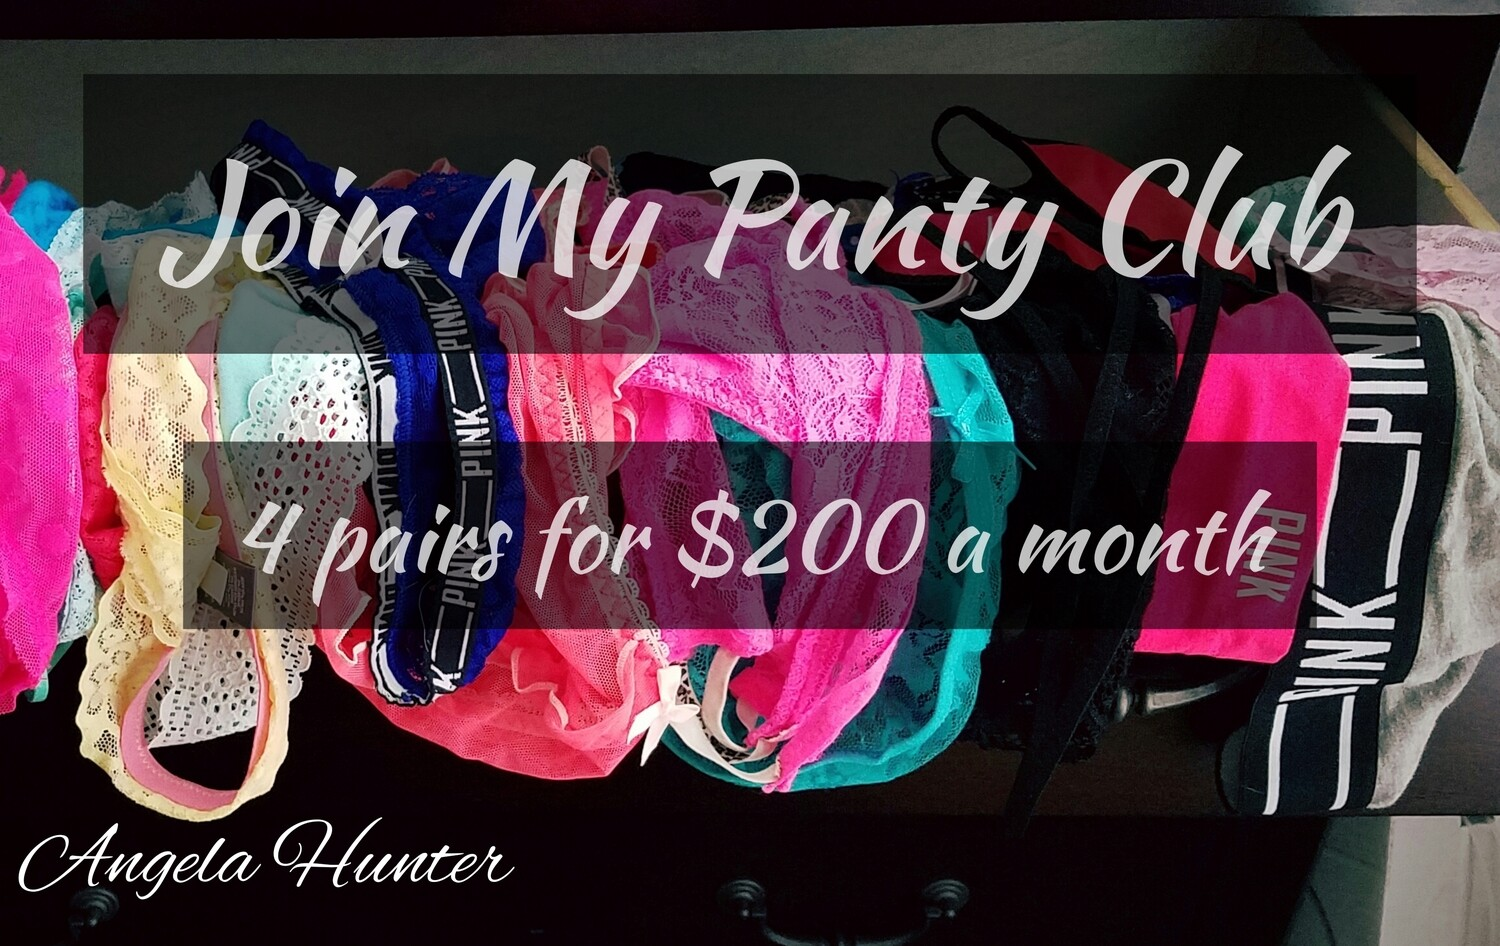 The Monthly Panty Club U.S. ONLY